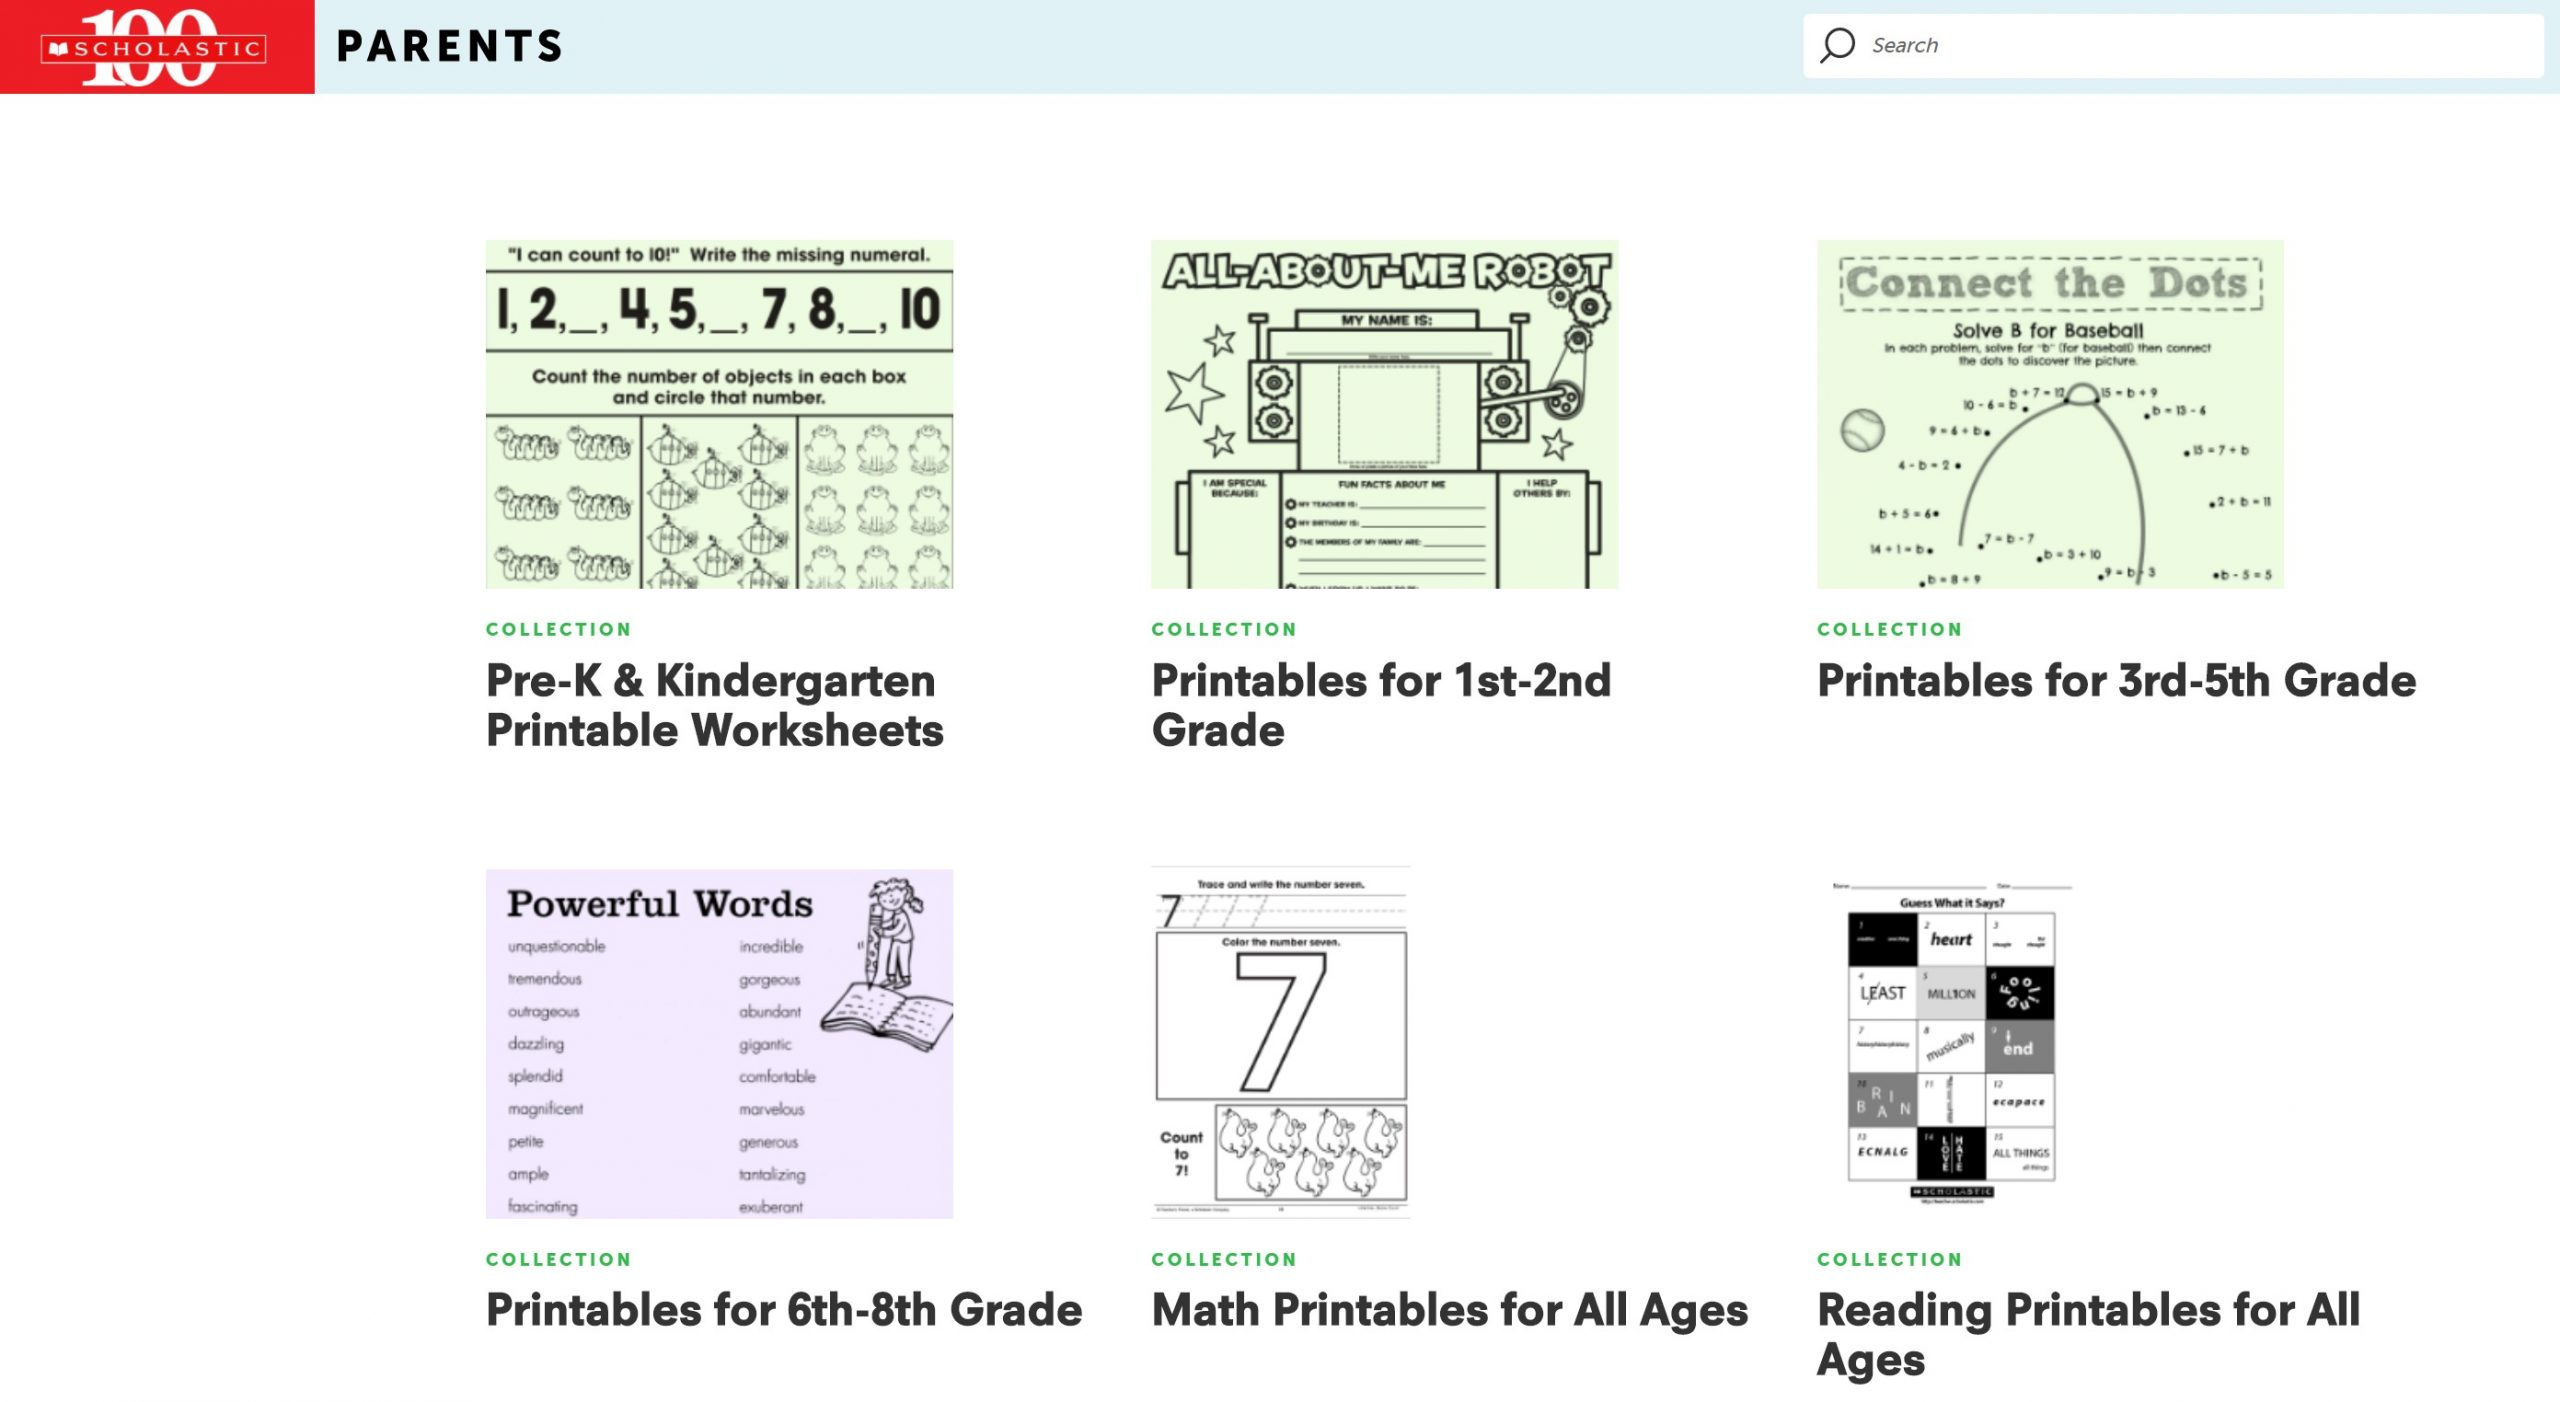 scholastic learning materials and workbook worksheets for children k-12 educational resources